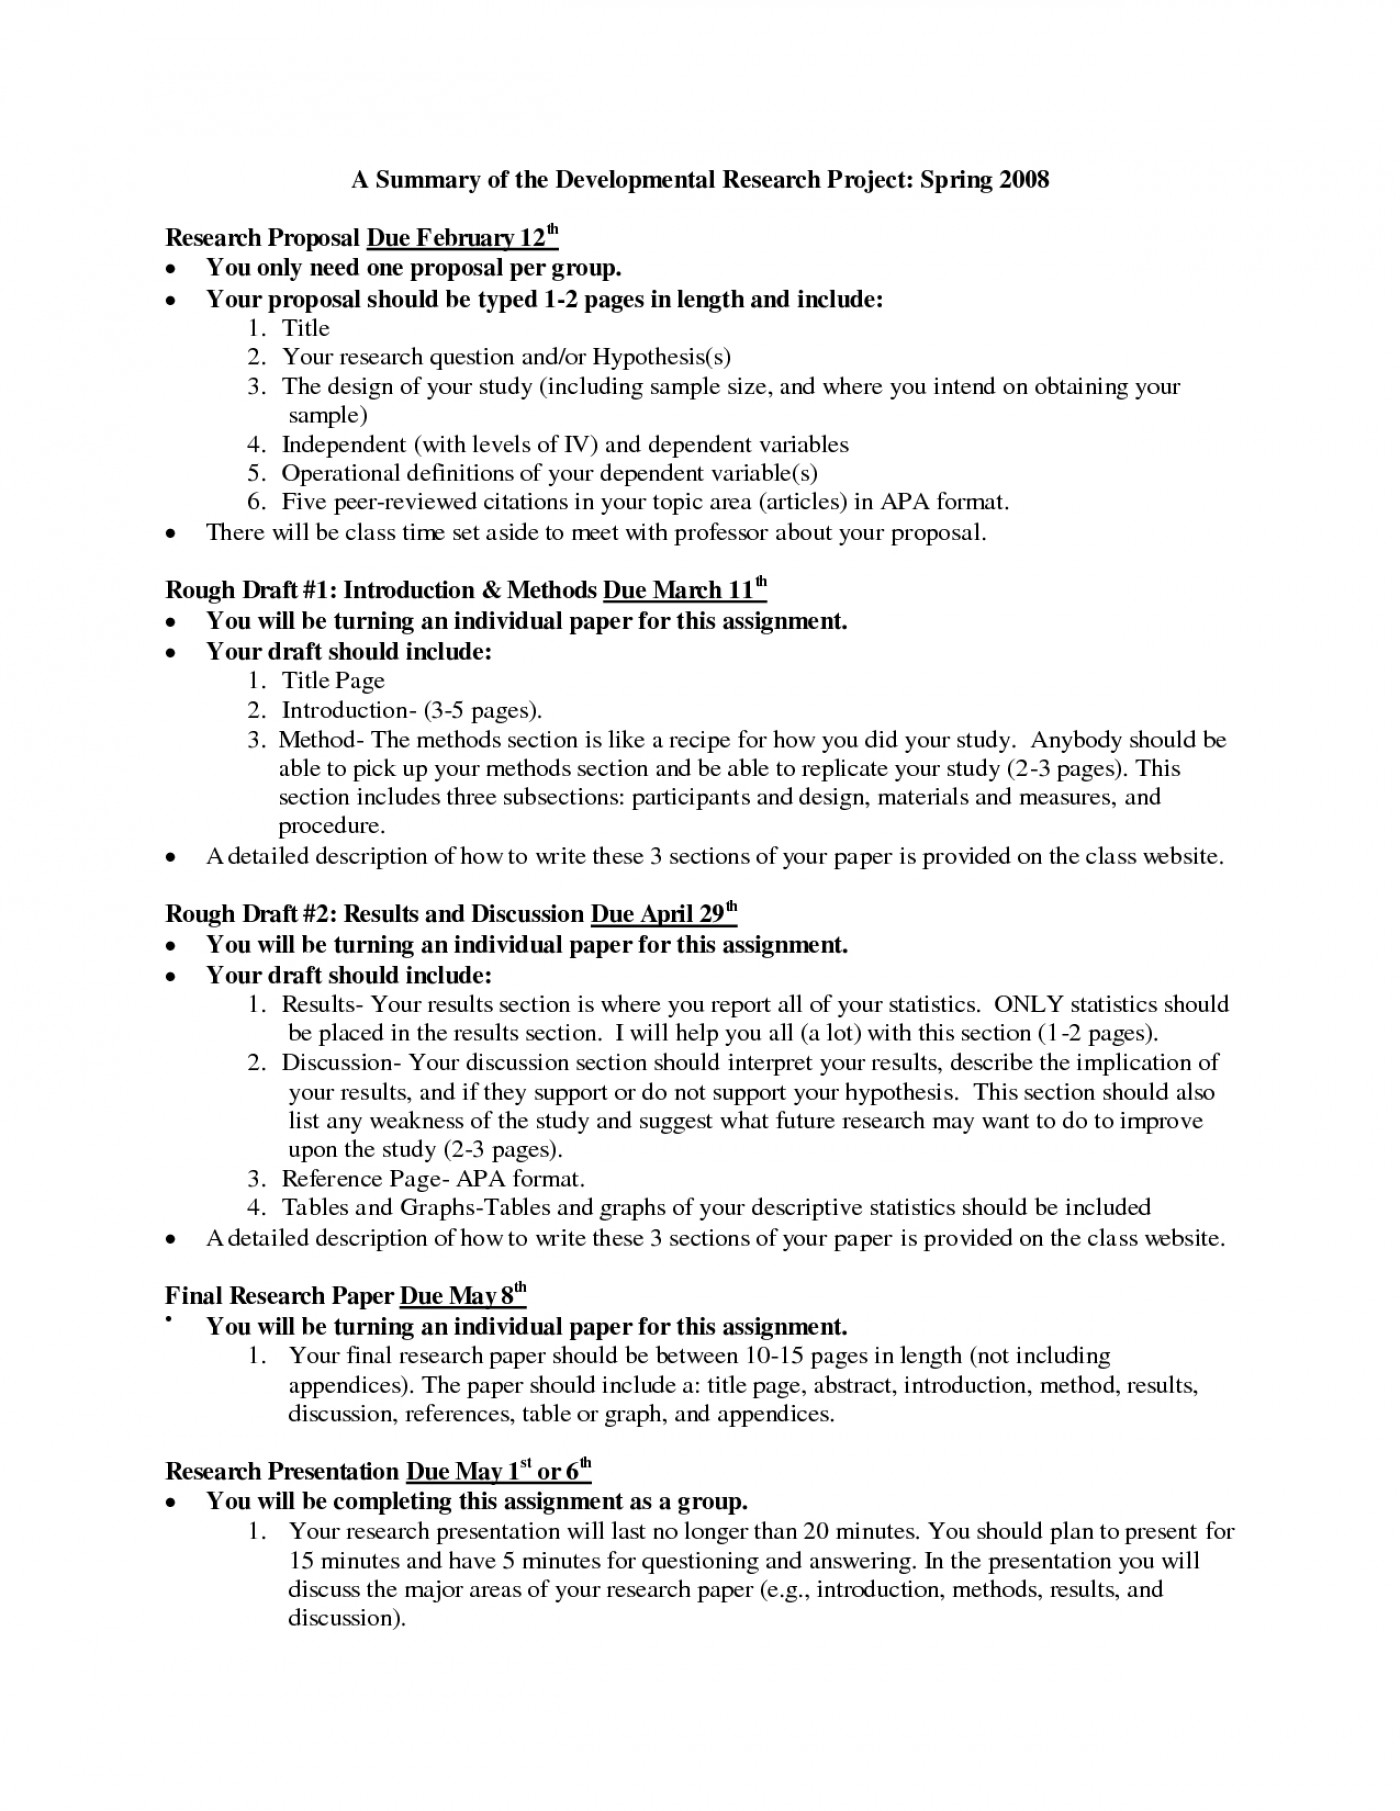 012 Good Research Paper Topic Psychology Undergraduate Resume Unique Sample Singular Topics About Sports For College English Biology High School Students 1400